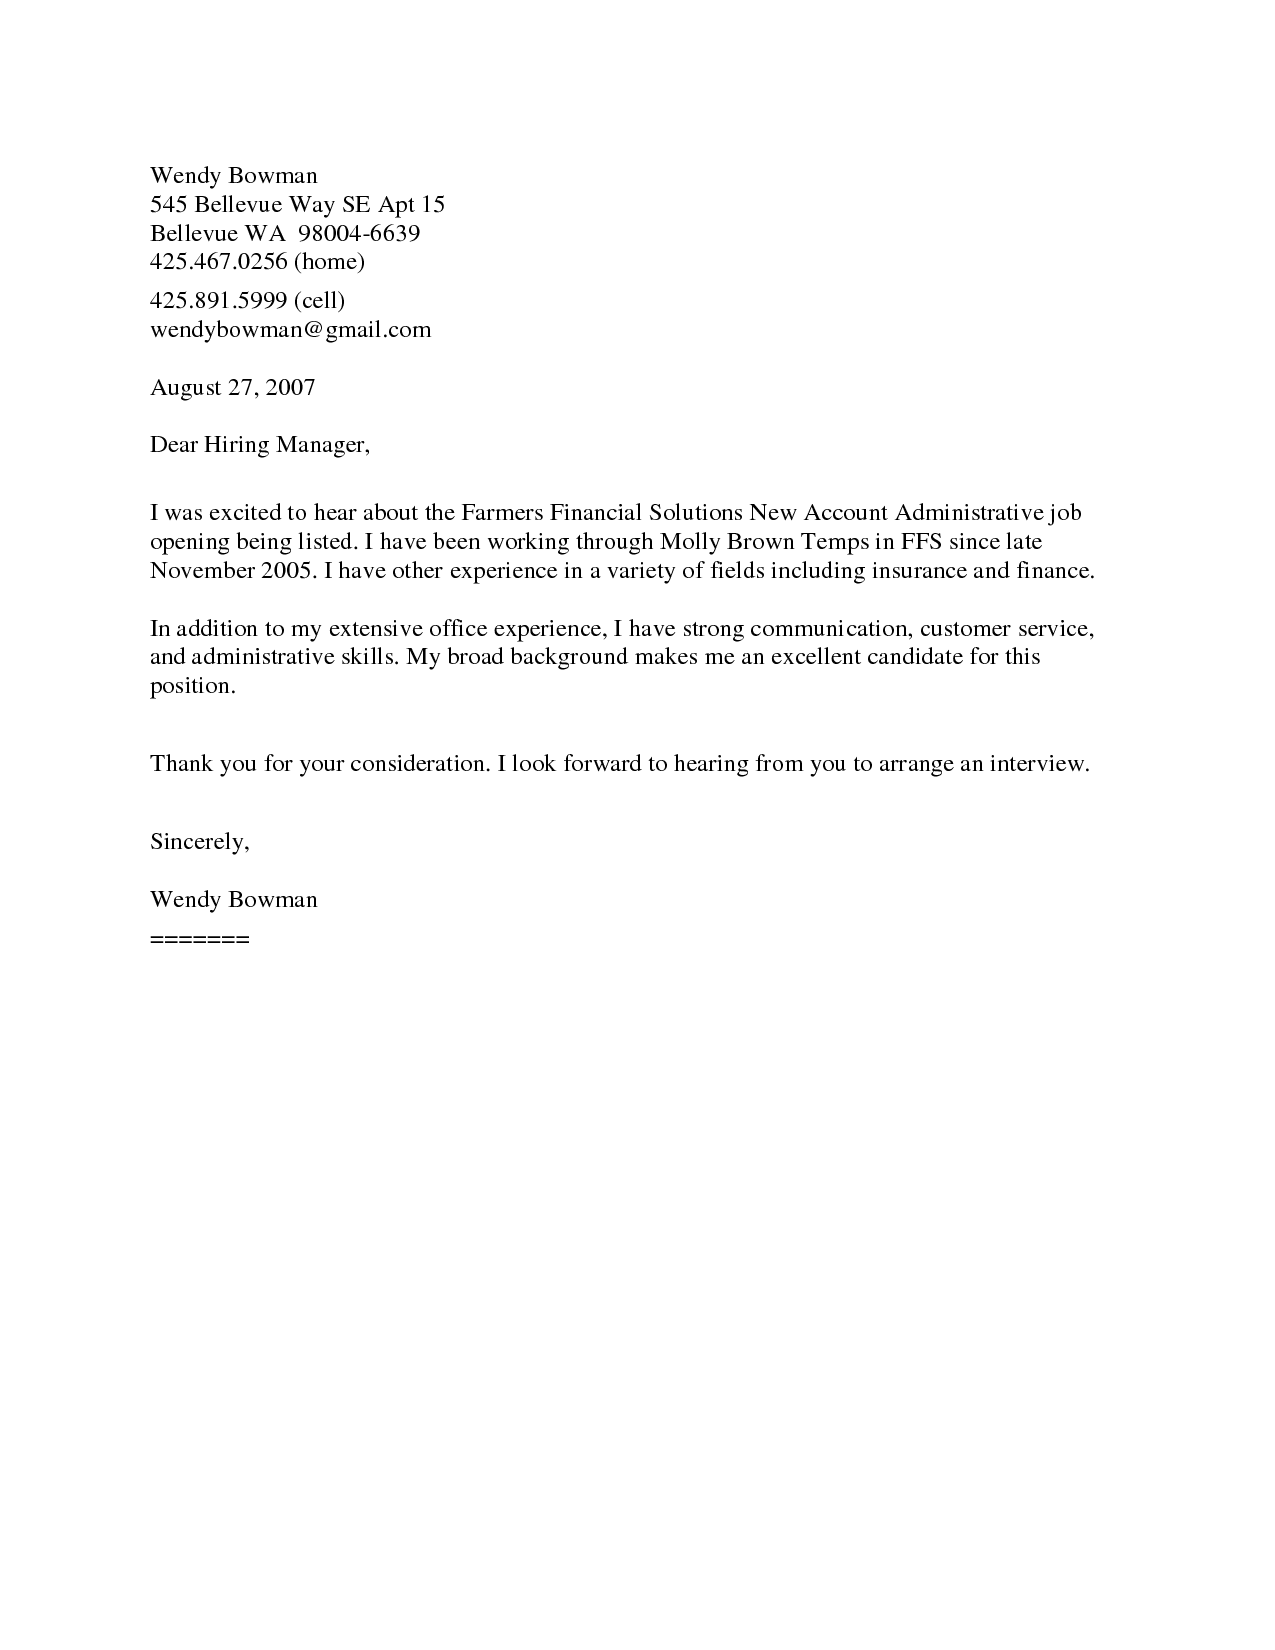 Cover Letter For A Sales Representative Online Writing Lab UrmarkRelocation Cover Letter Cover